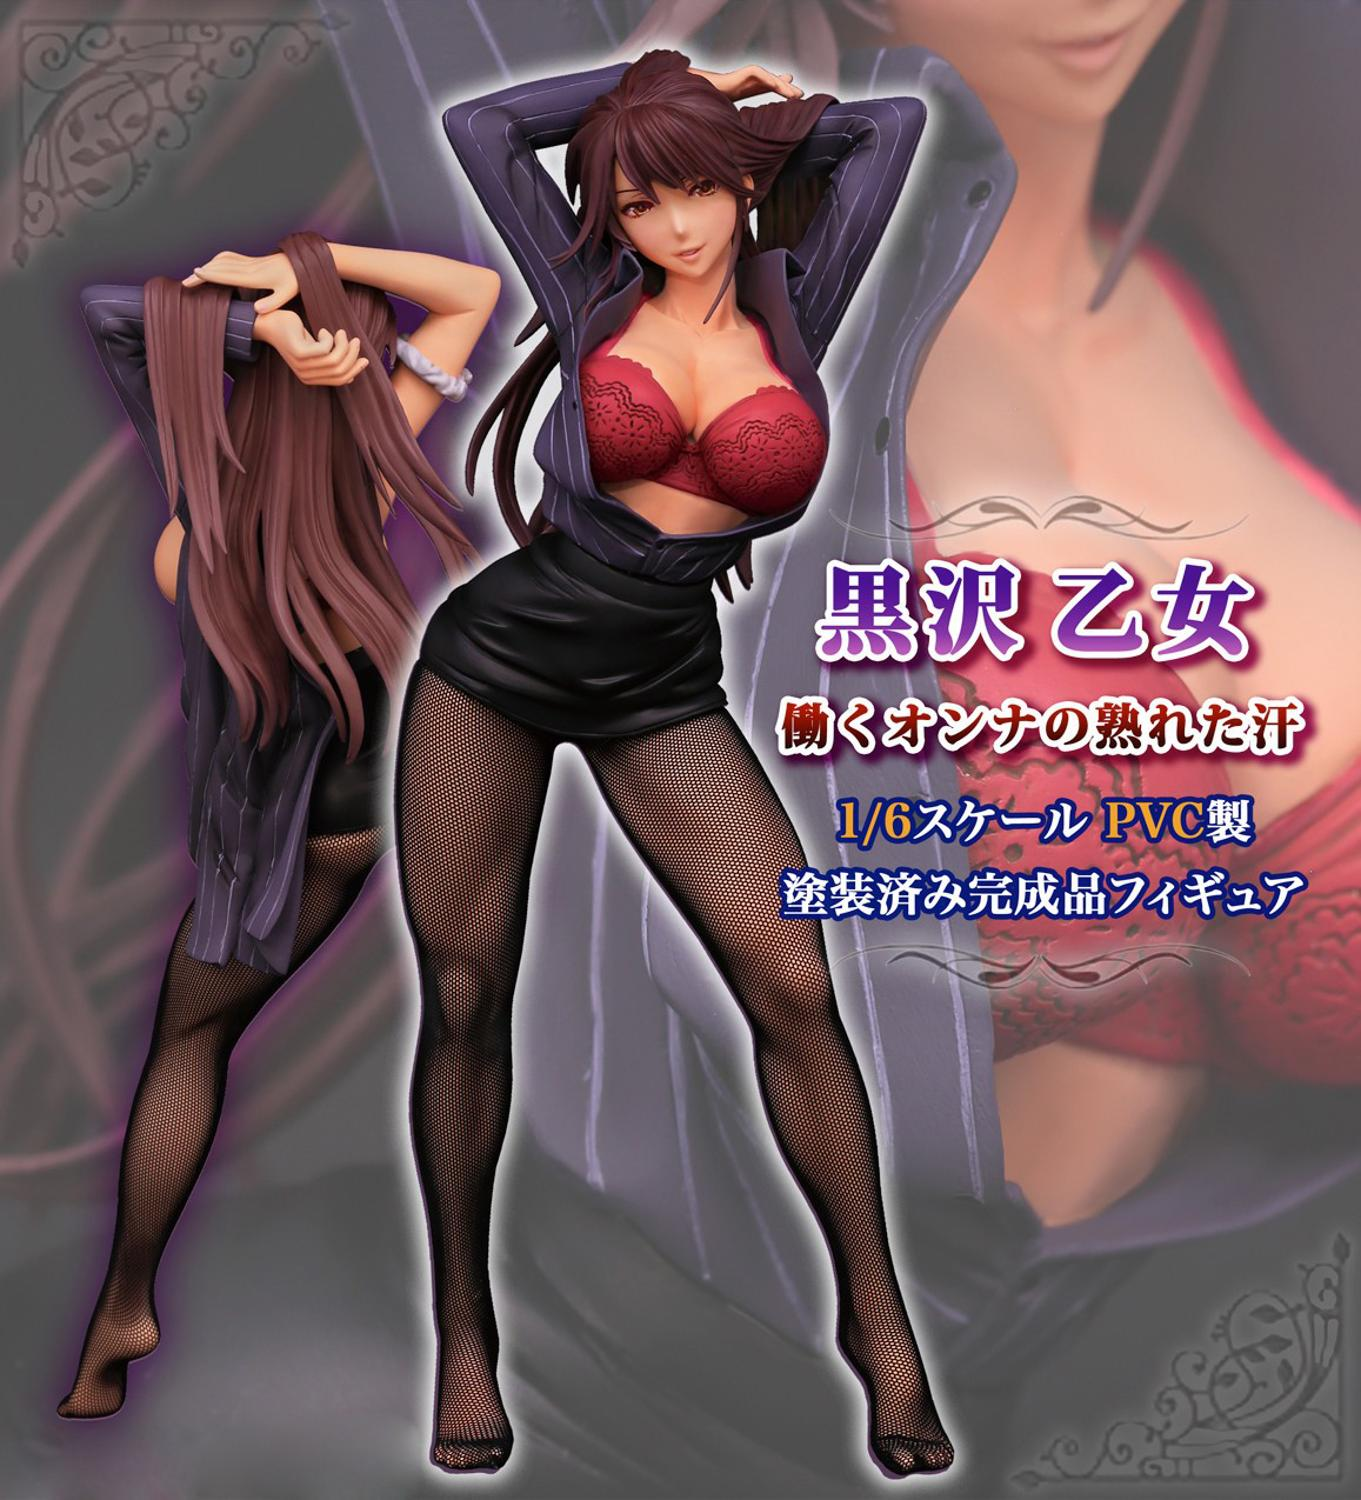 27cm Kurosawaotome A-PLUS A+ Otome Kurosama Sexy Girls Action Figure Japanese Anime PVC Adult Action Figures Toys Anime Figures